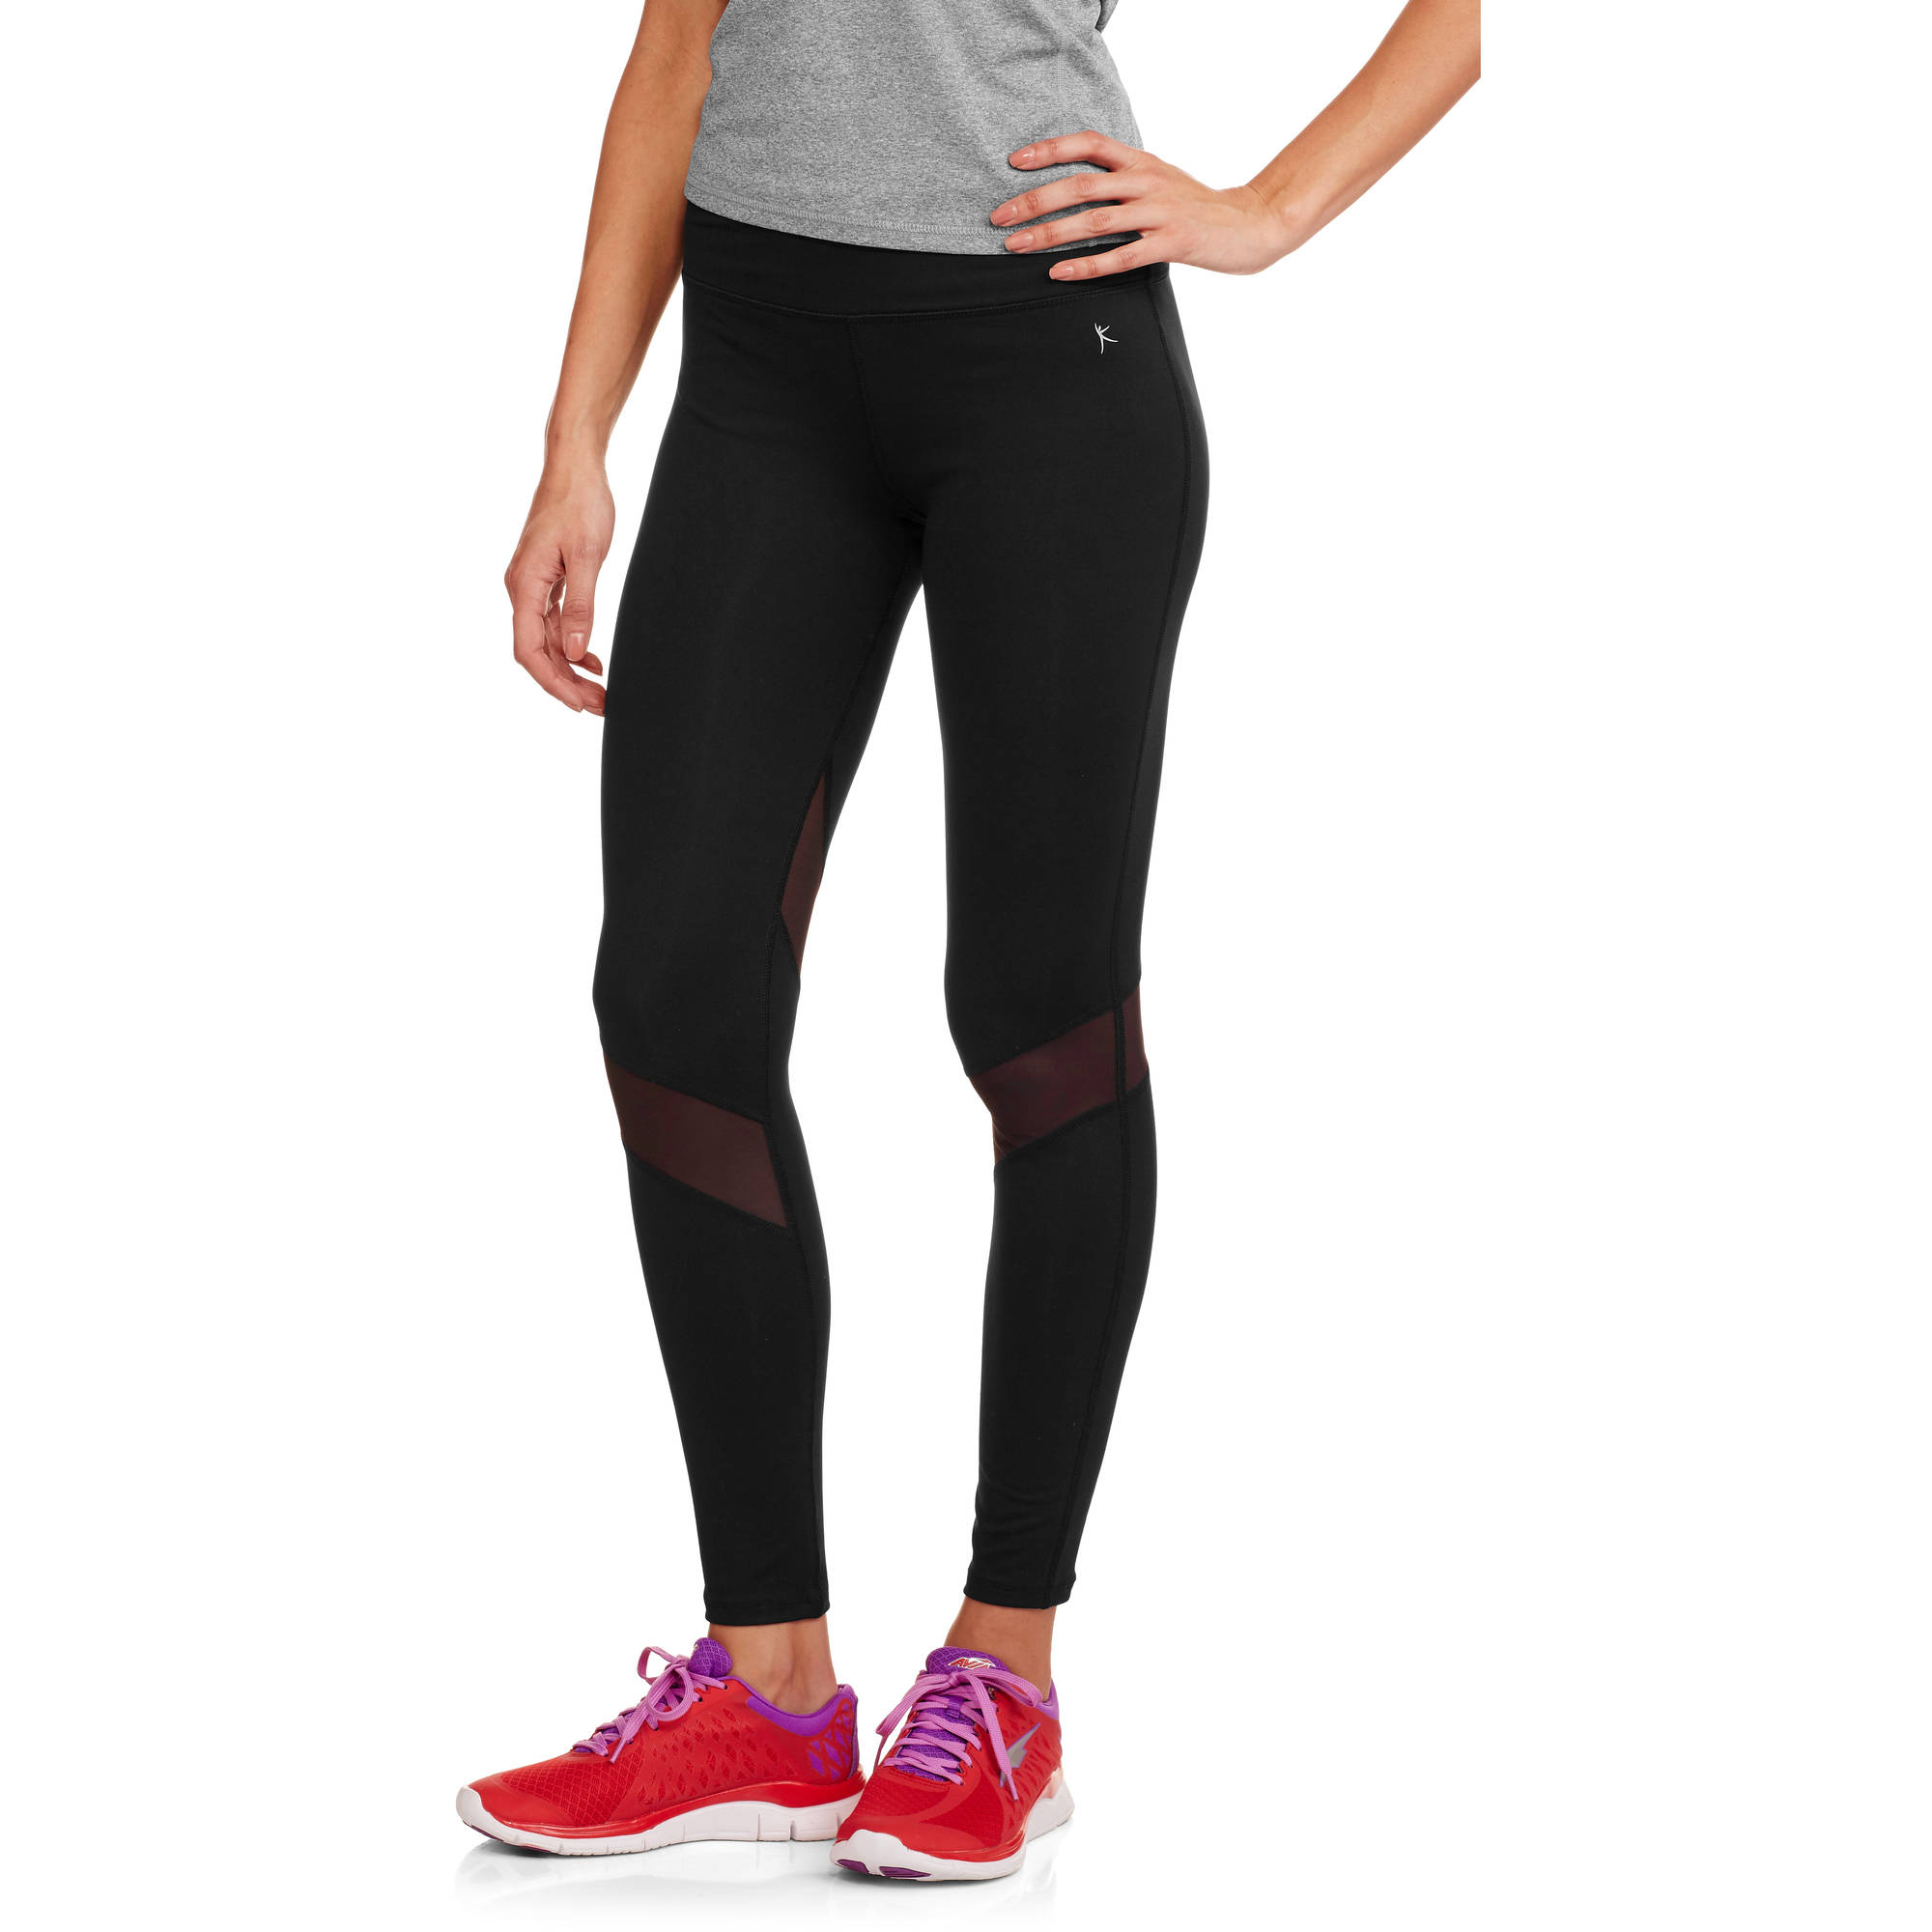 Women's Premium Nylon Performance Ankle Tight with Mesh Insets